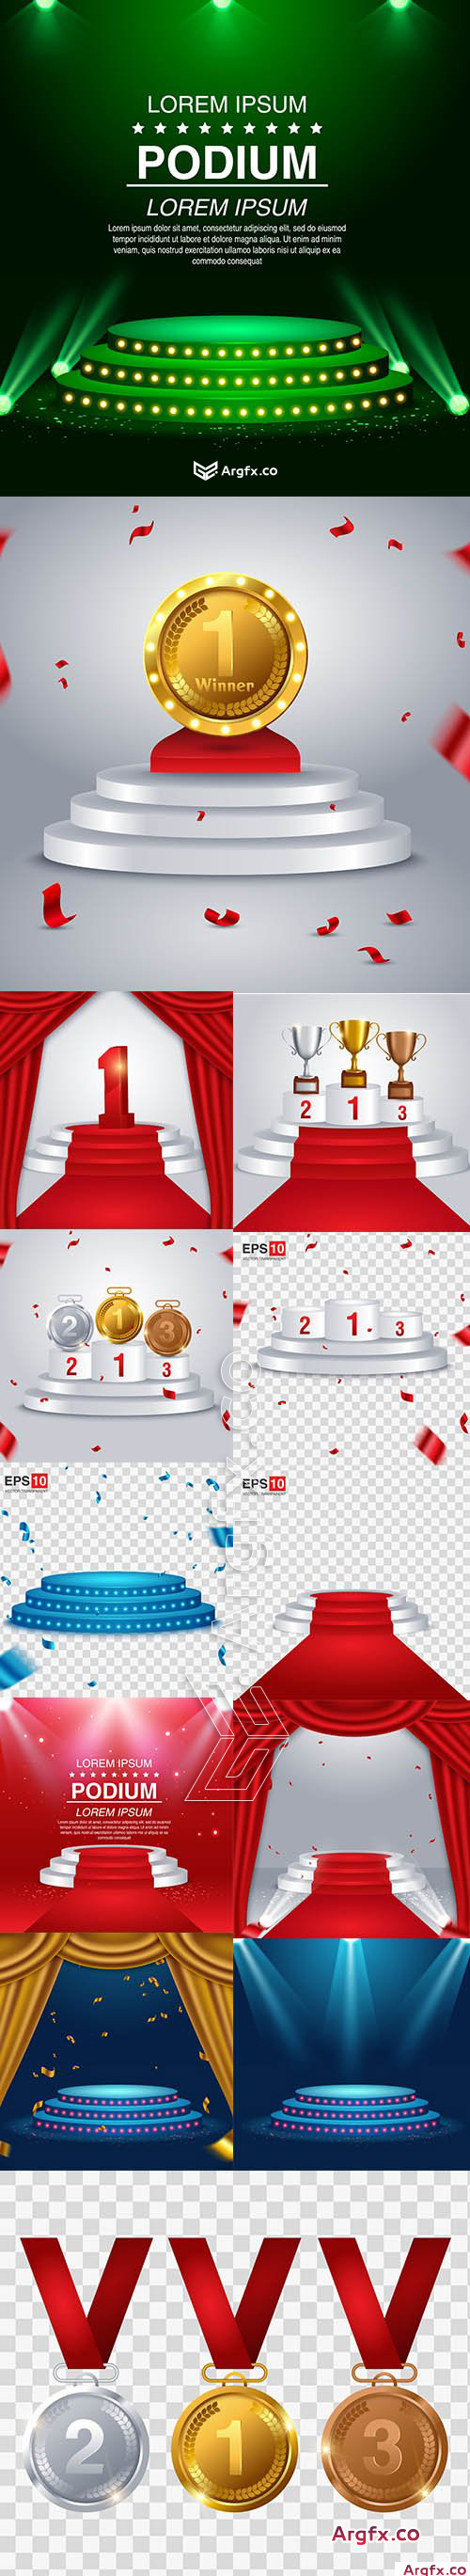 Red Carpet Round Podium Backgrounds